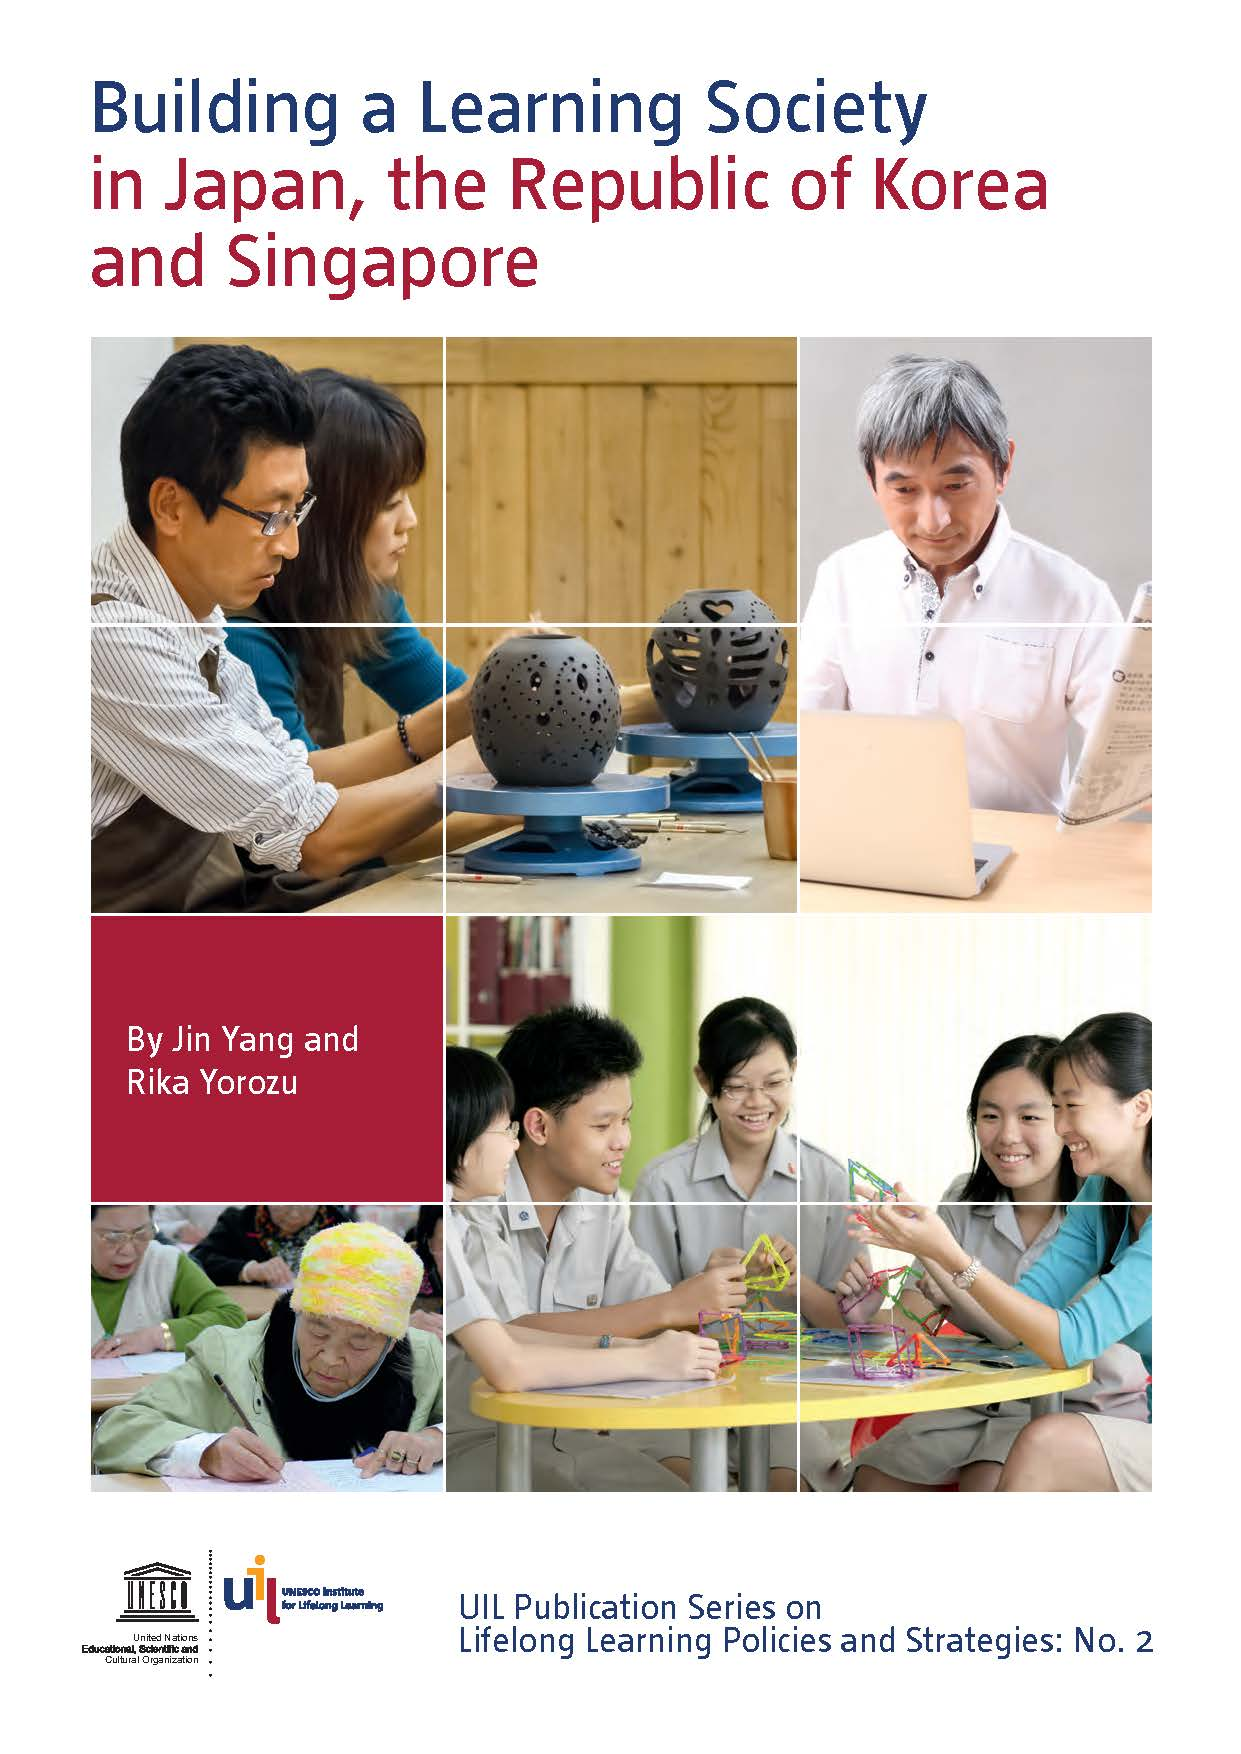 Building a Learning Society in Japan, the Republic of Korea and Singapore